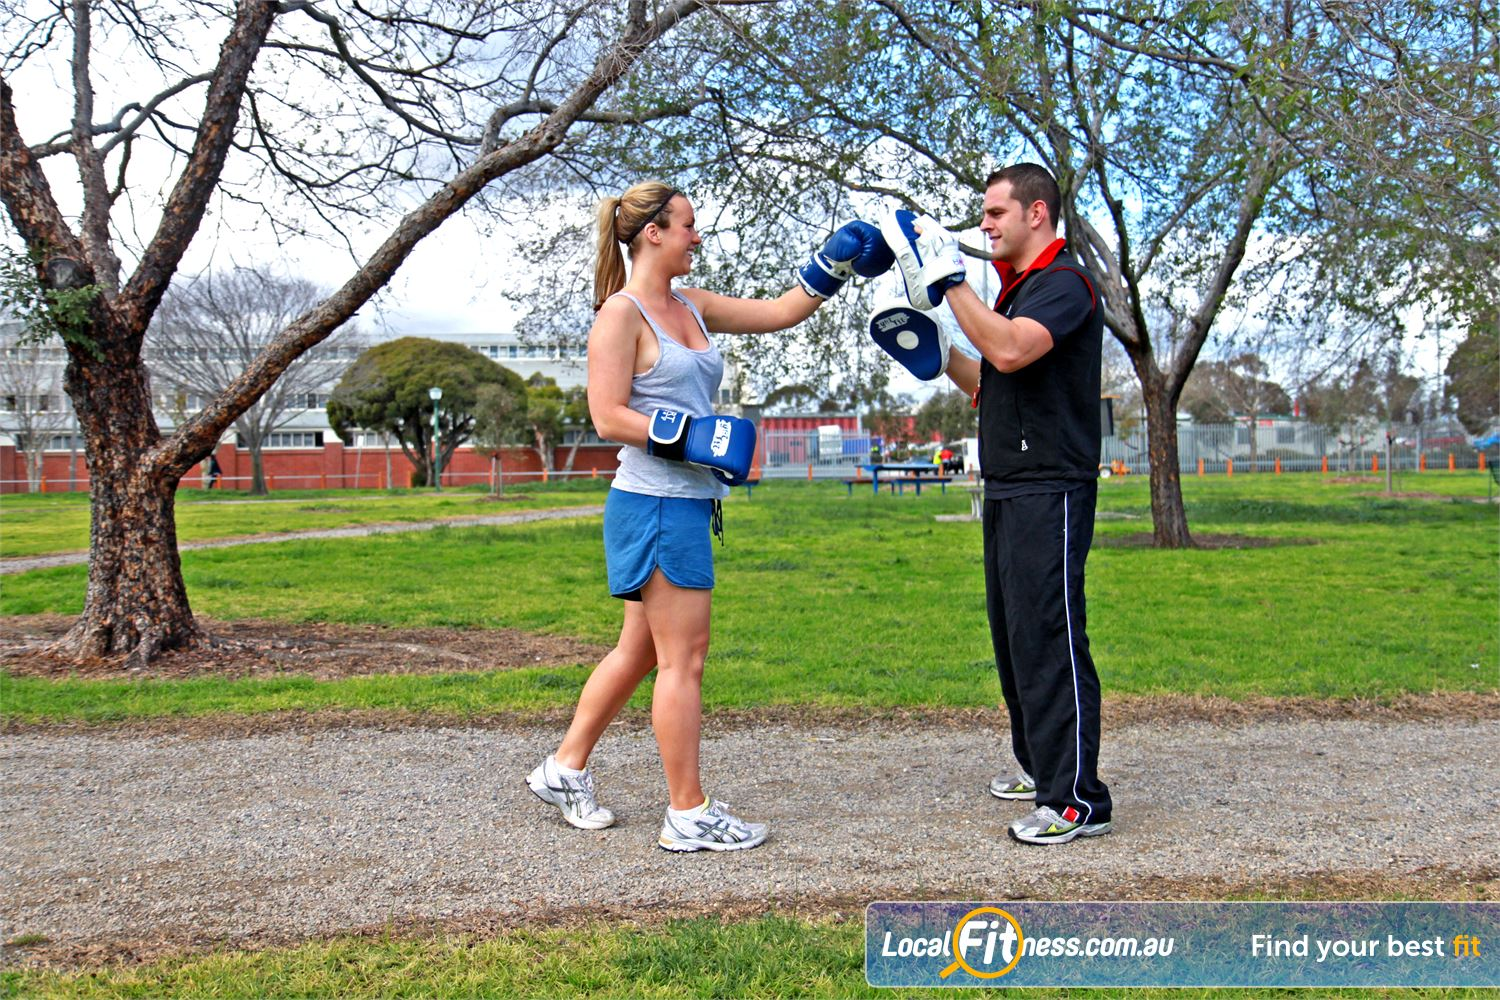 Ascot Vale Leisure Centre Near Moonee Ponds Vary your workout outdoors with cardio boxing, running and more.